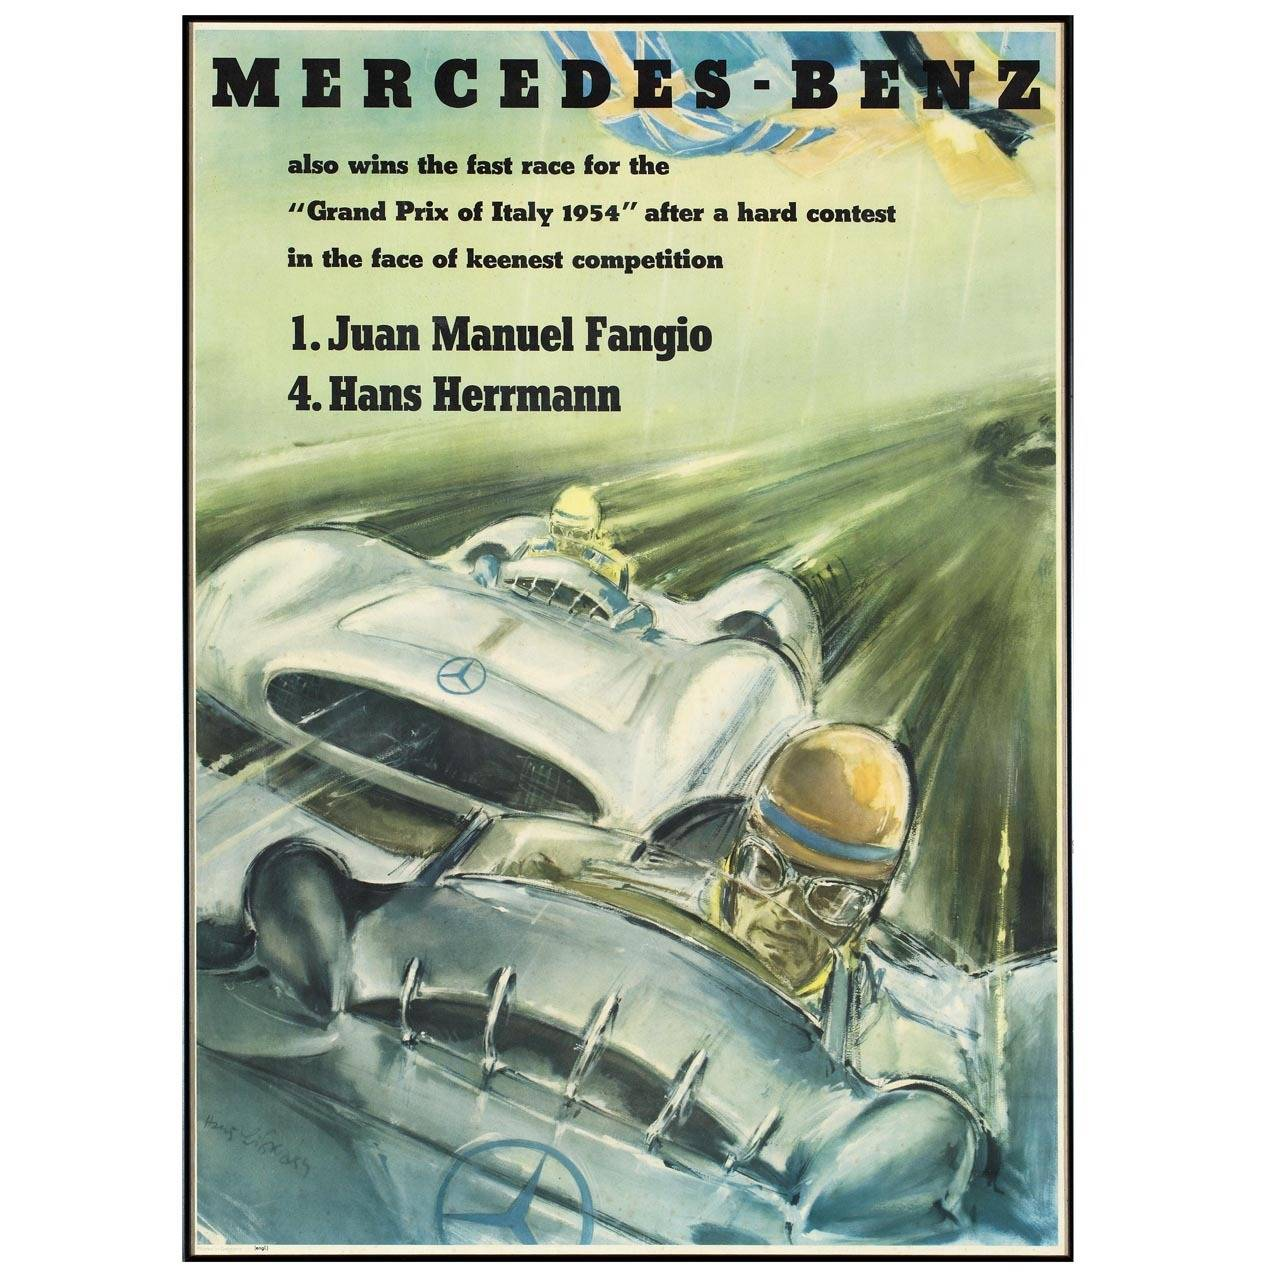 Original mercedes benz poster by hans liska for sale at for Mercedes benz wall posters